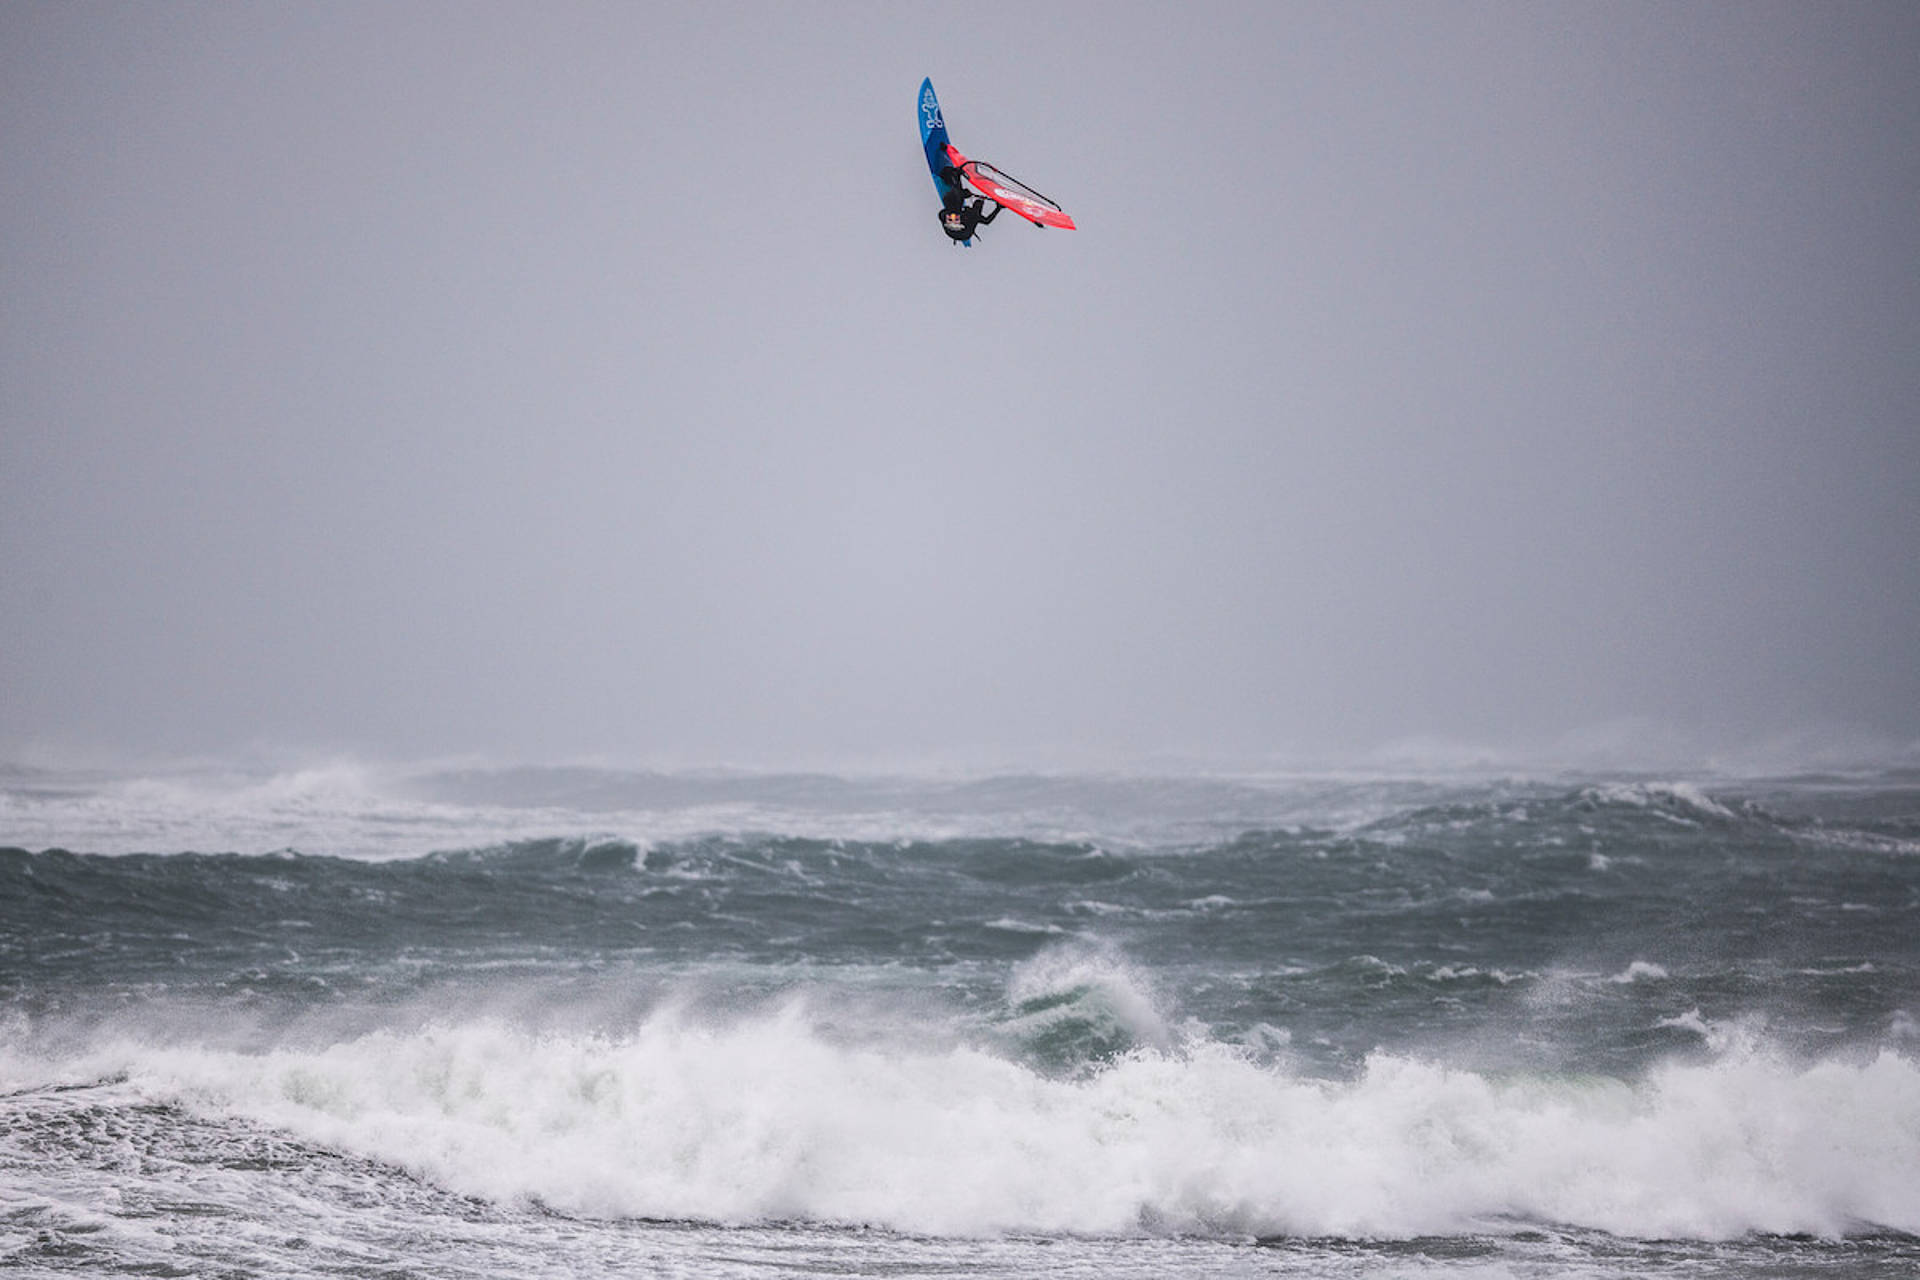 PWA WORLD WINDSURFING TOUR: Red Bull Storm Chase 2019